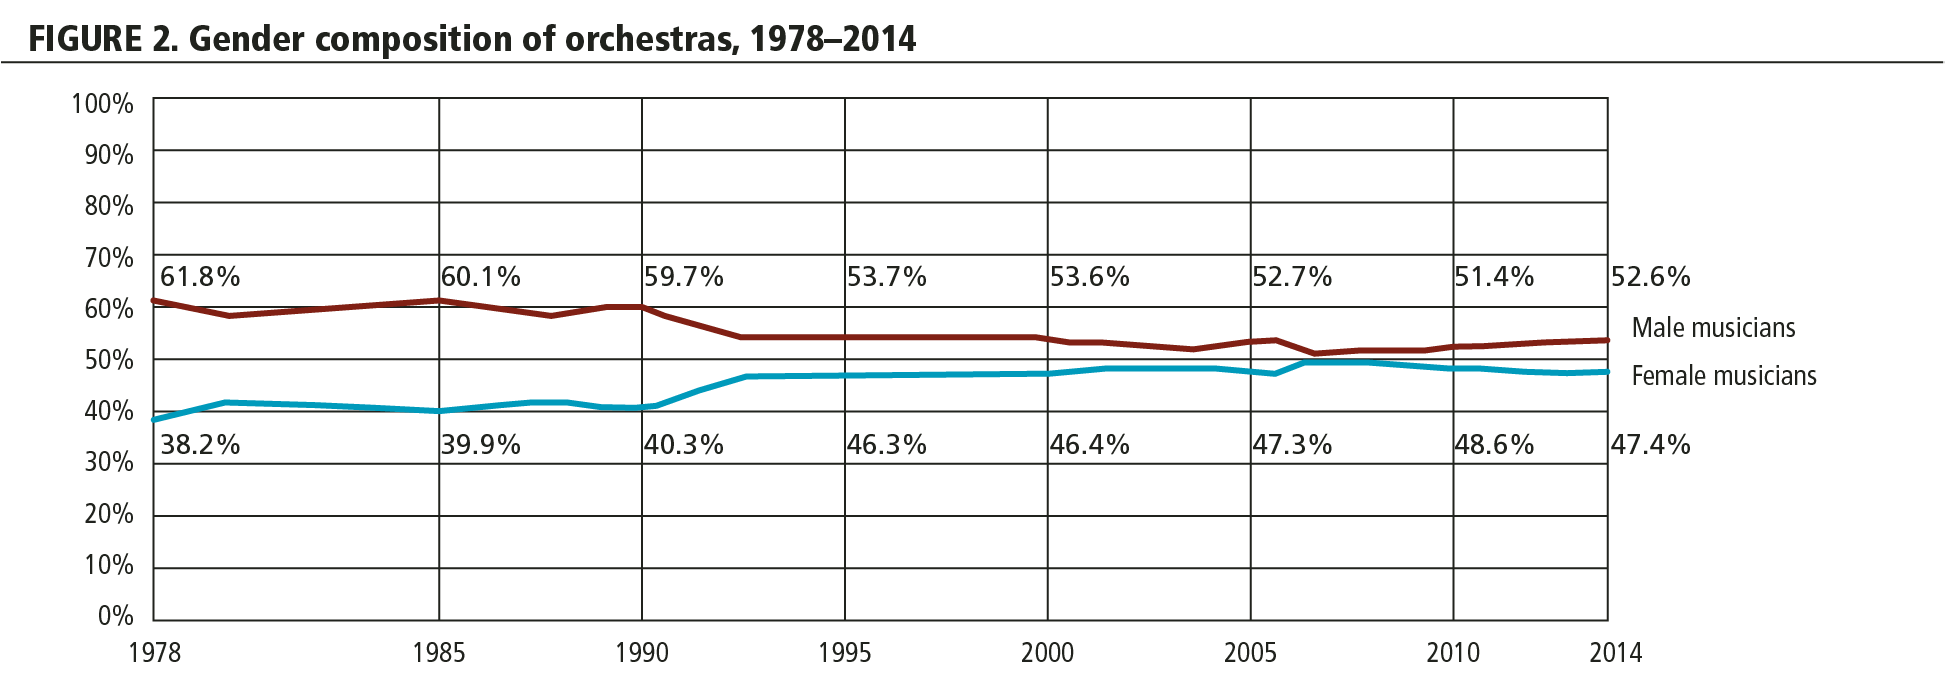 FIGURE 2. Gender composition of orchestras, 1978-2014